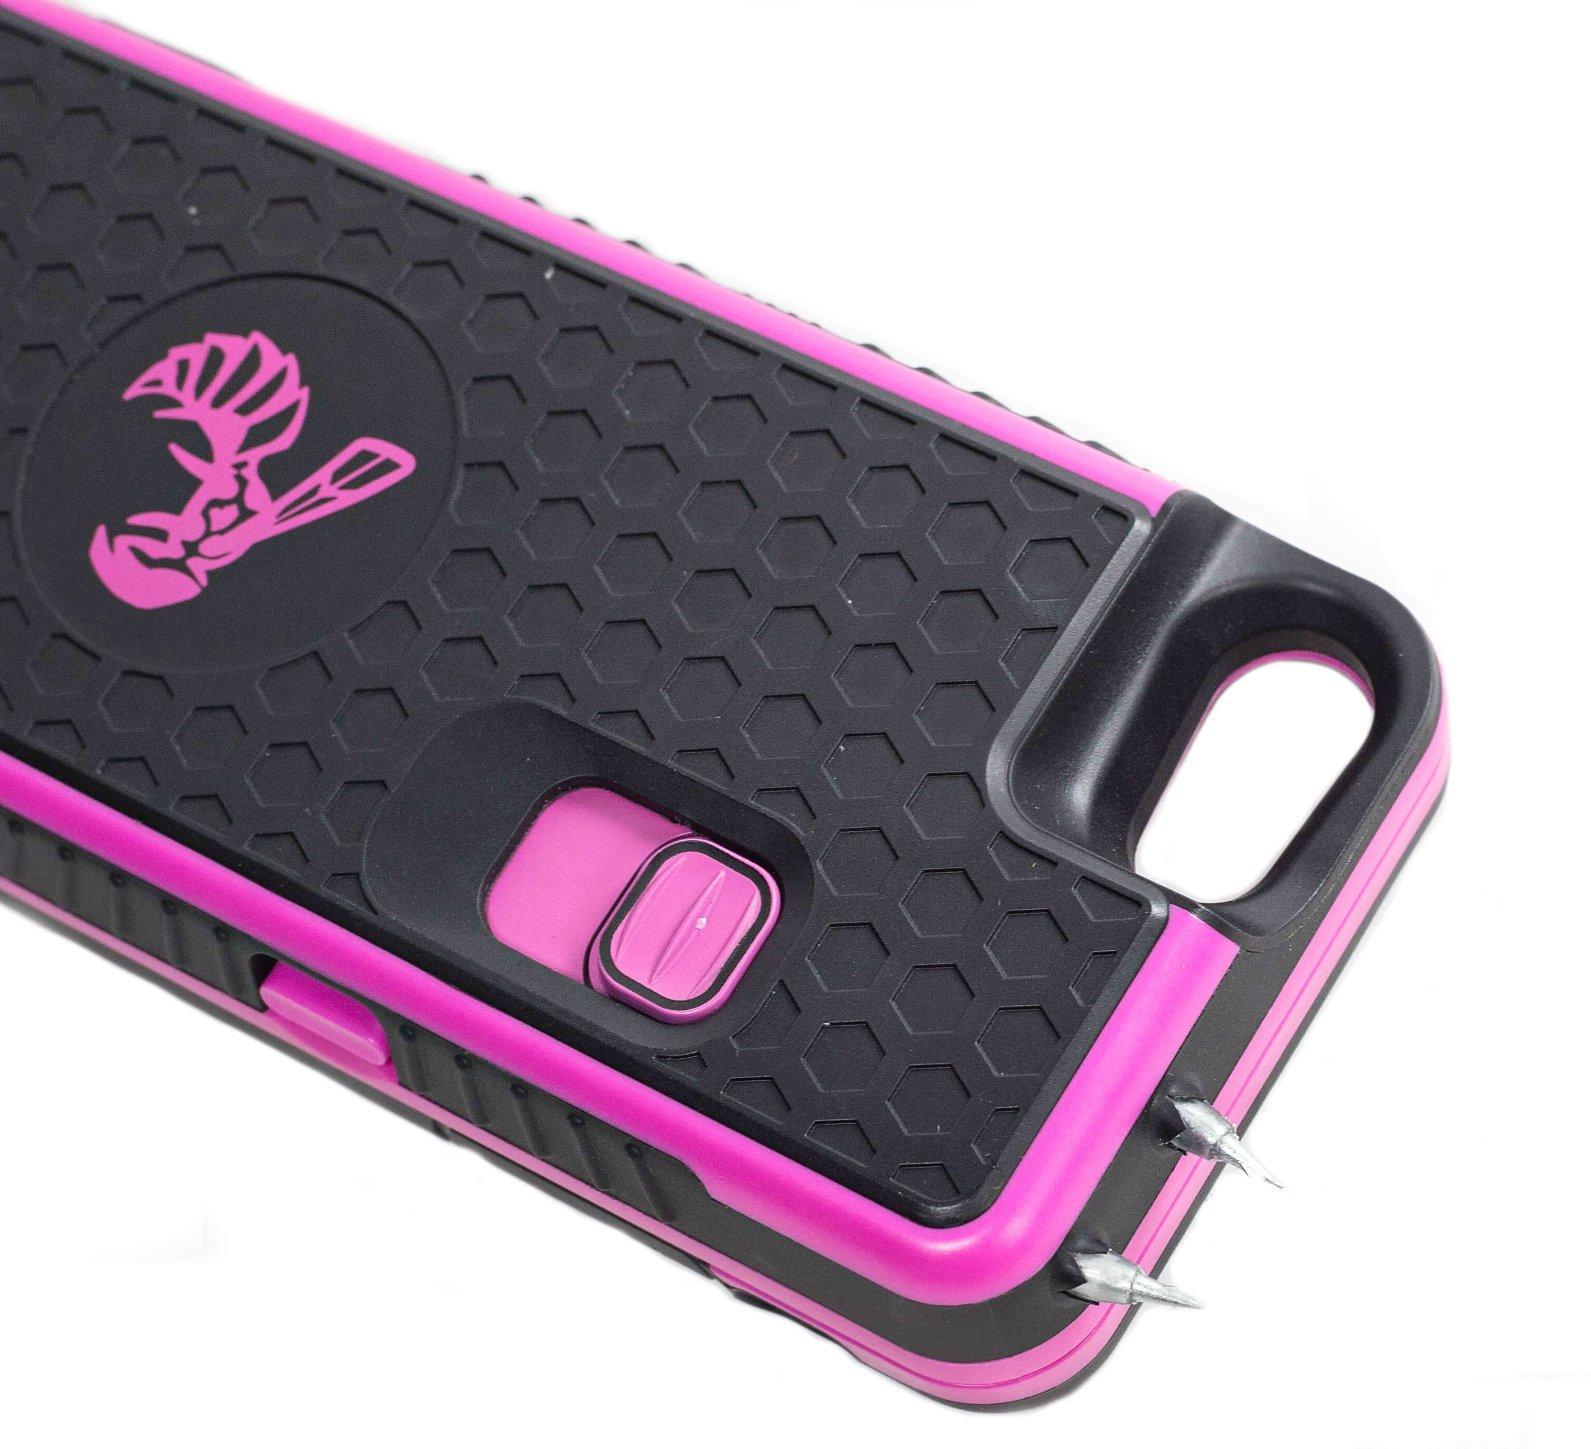 The Only High-Powered Stun Gun that Protects & Recharges Your iPhone 7/7s/8 - Concealed Inside a Durable Weatherproof Case - Flexibility to Attach/Detach - 5.0mAh for Maximum Self Defense - Pink